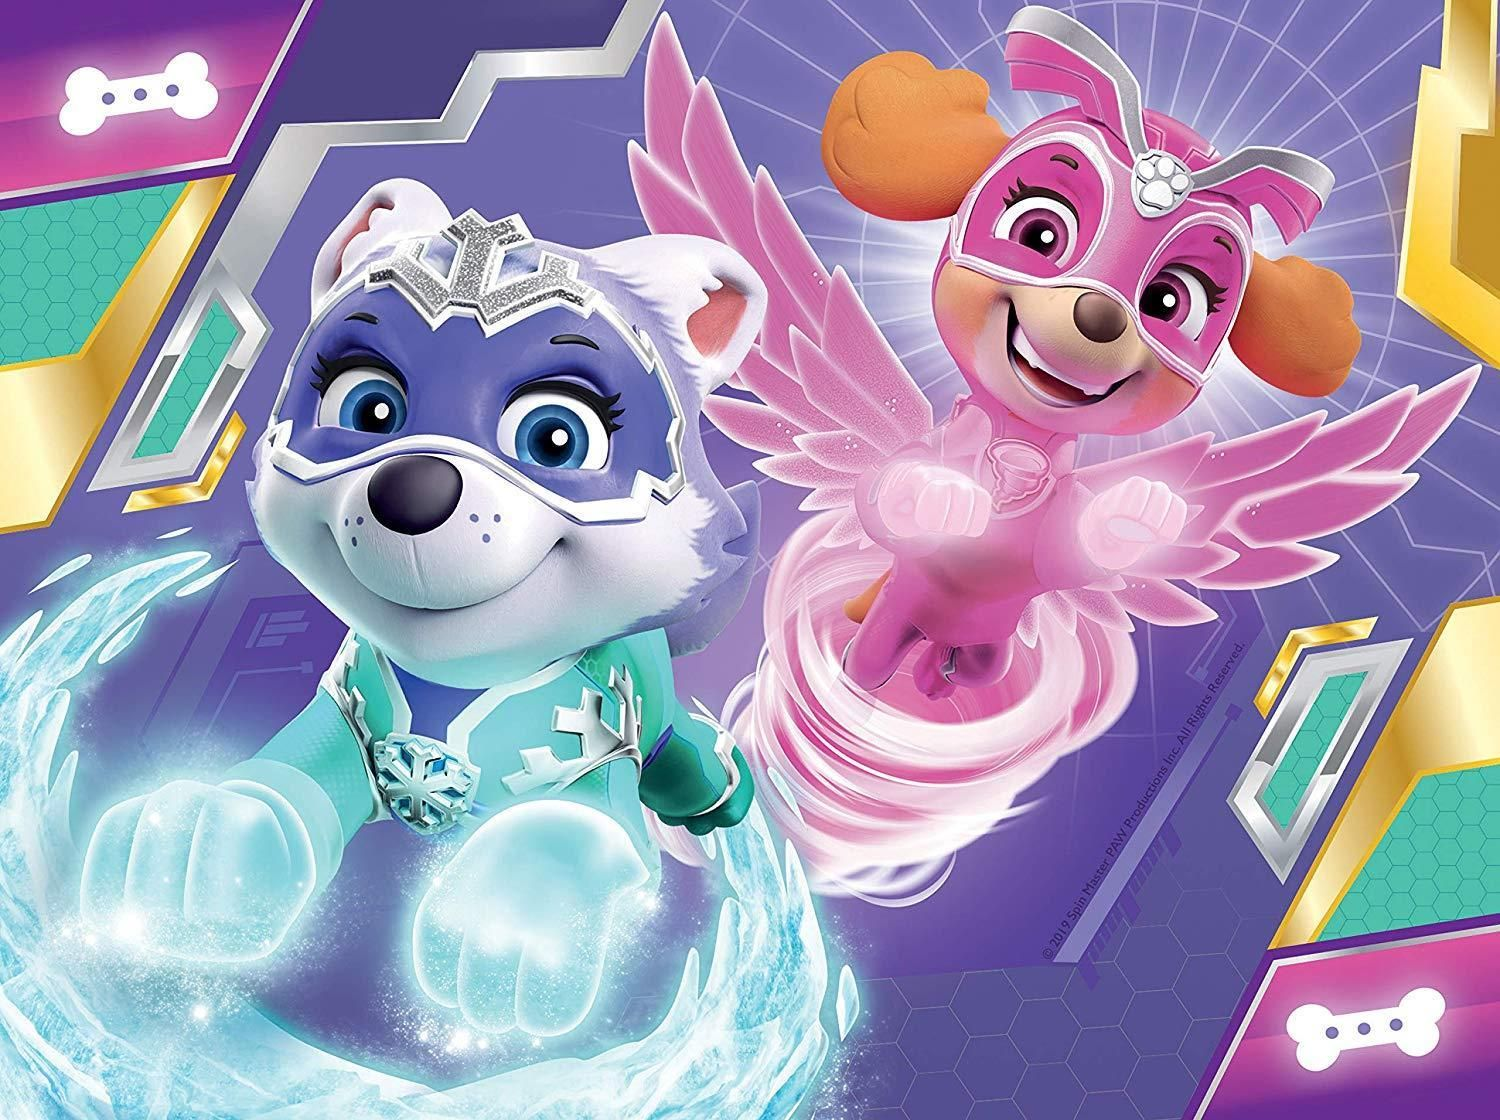 Ravensburger Paw Patrol Mighty Pups 4 In A Box Jigsaw Puzzles Fiesta Paw Paw Patrol Paw Patrol Pups